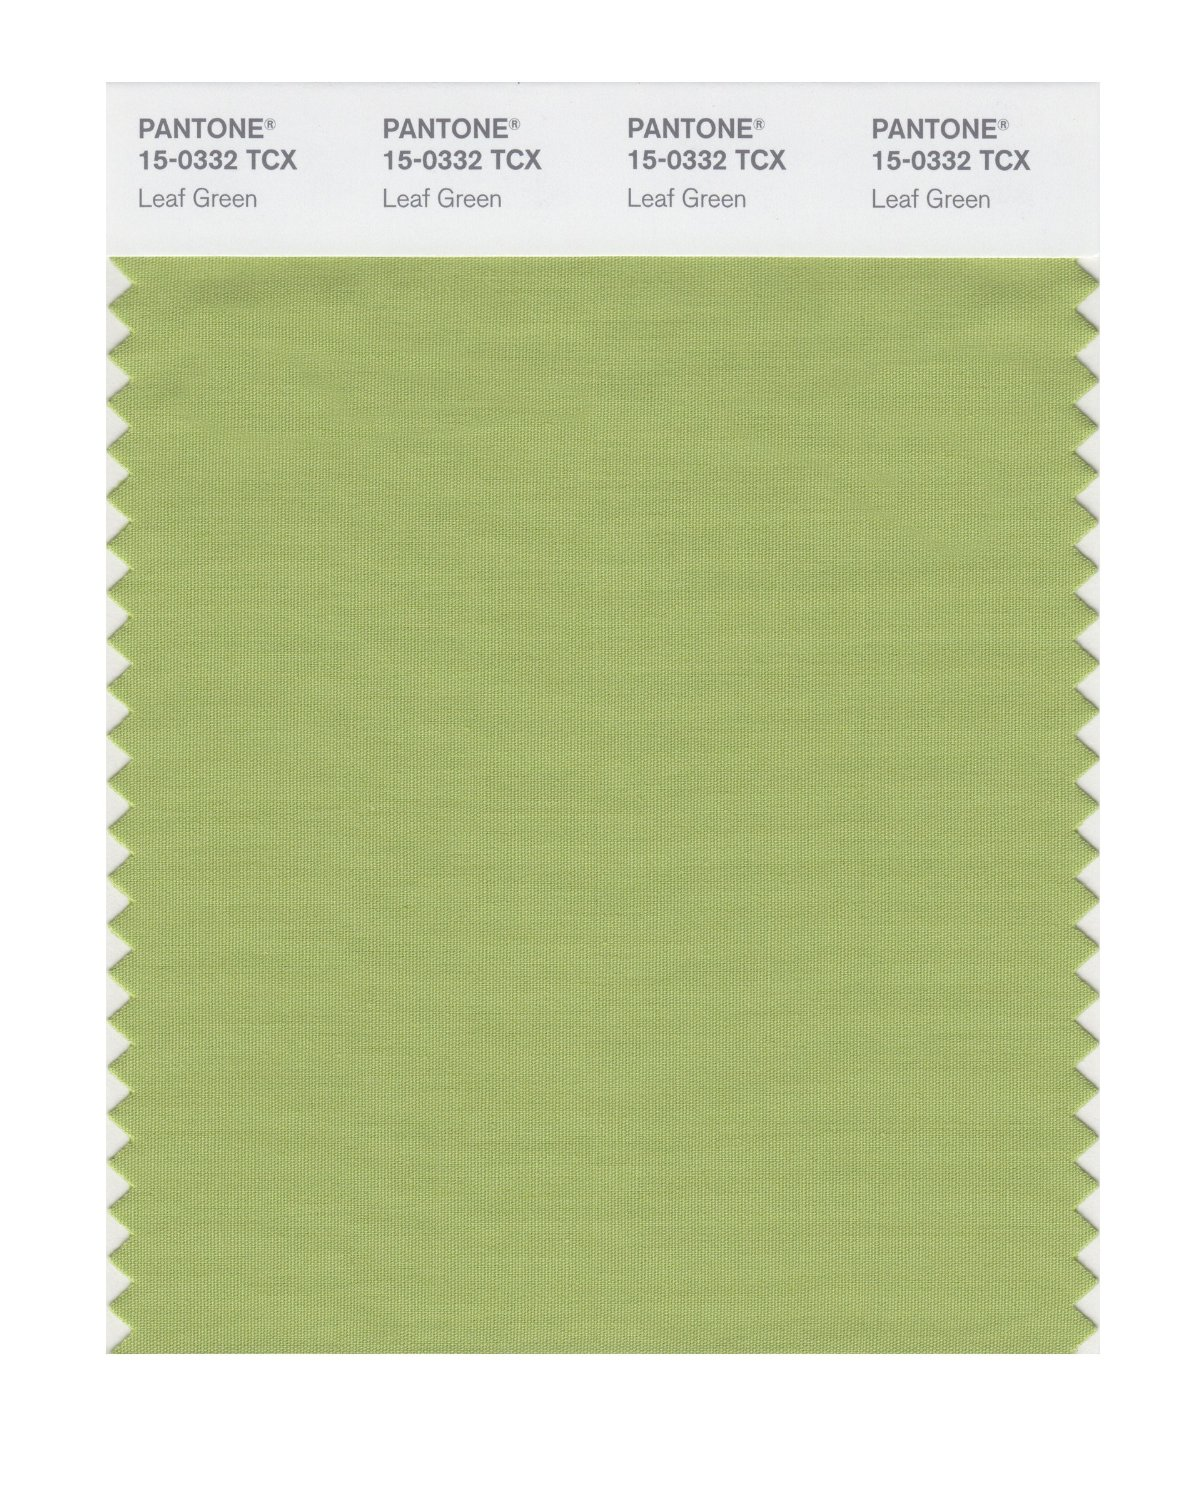 Pantone Smart Swatch 15-0332 Leaf Green